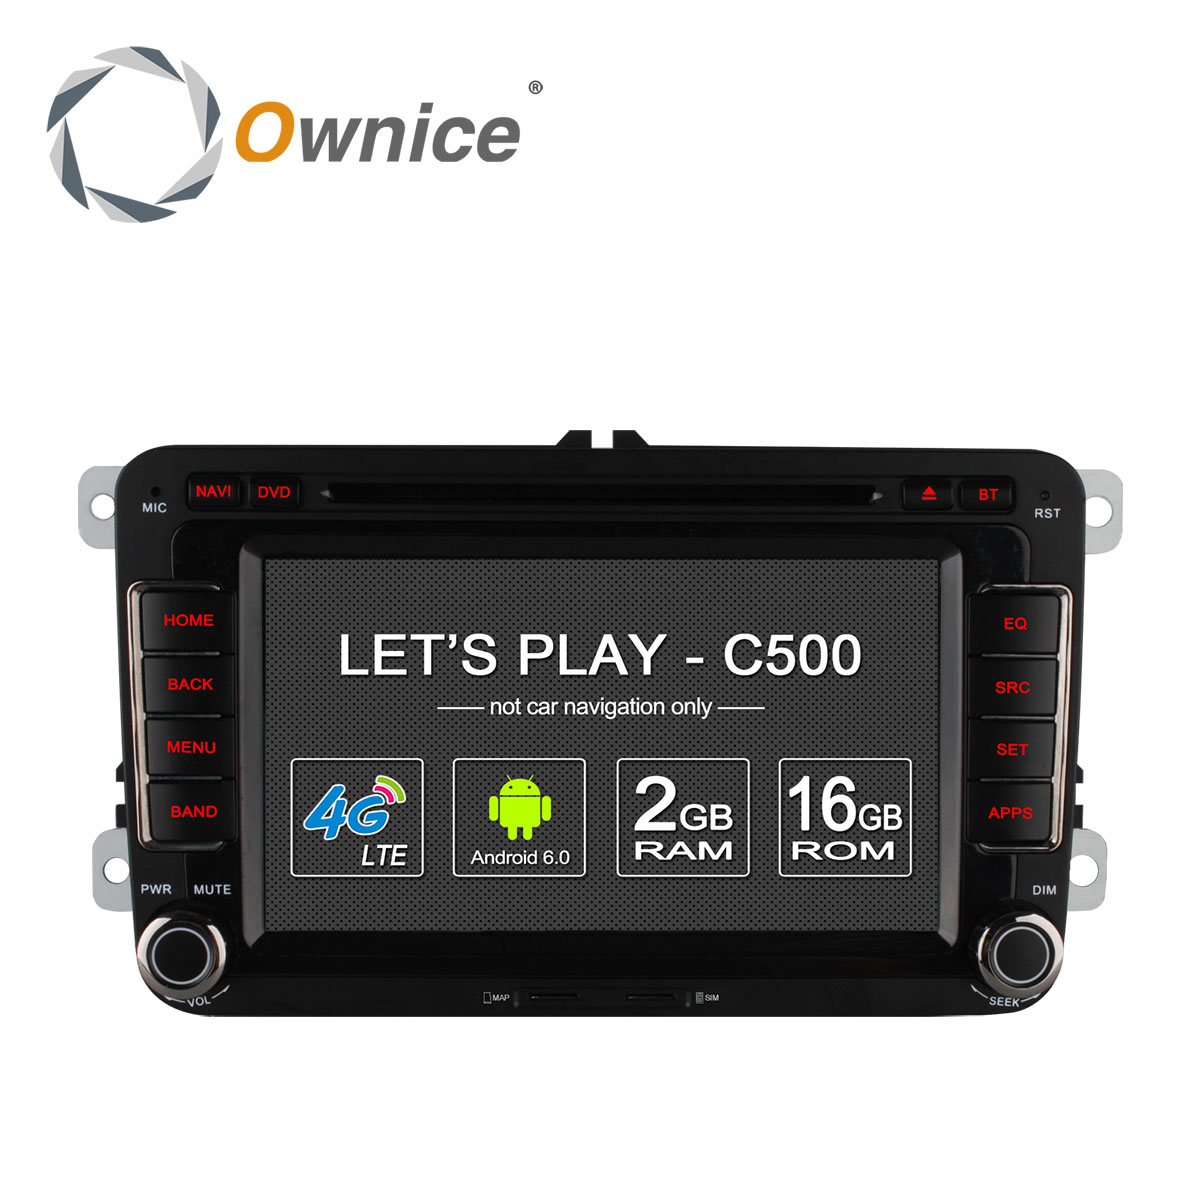 Ownice C500 Android 6 0 4Core 2G RAM font b Car b font DVD Player For